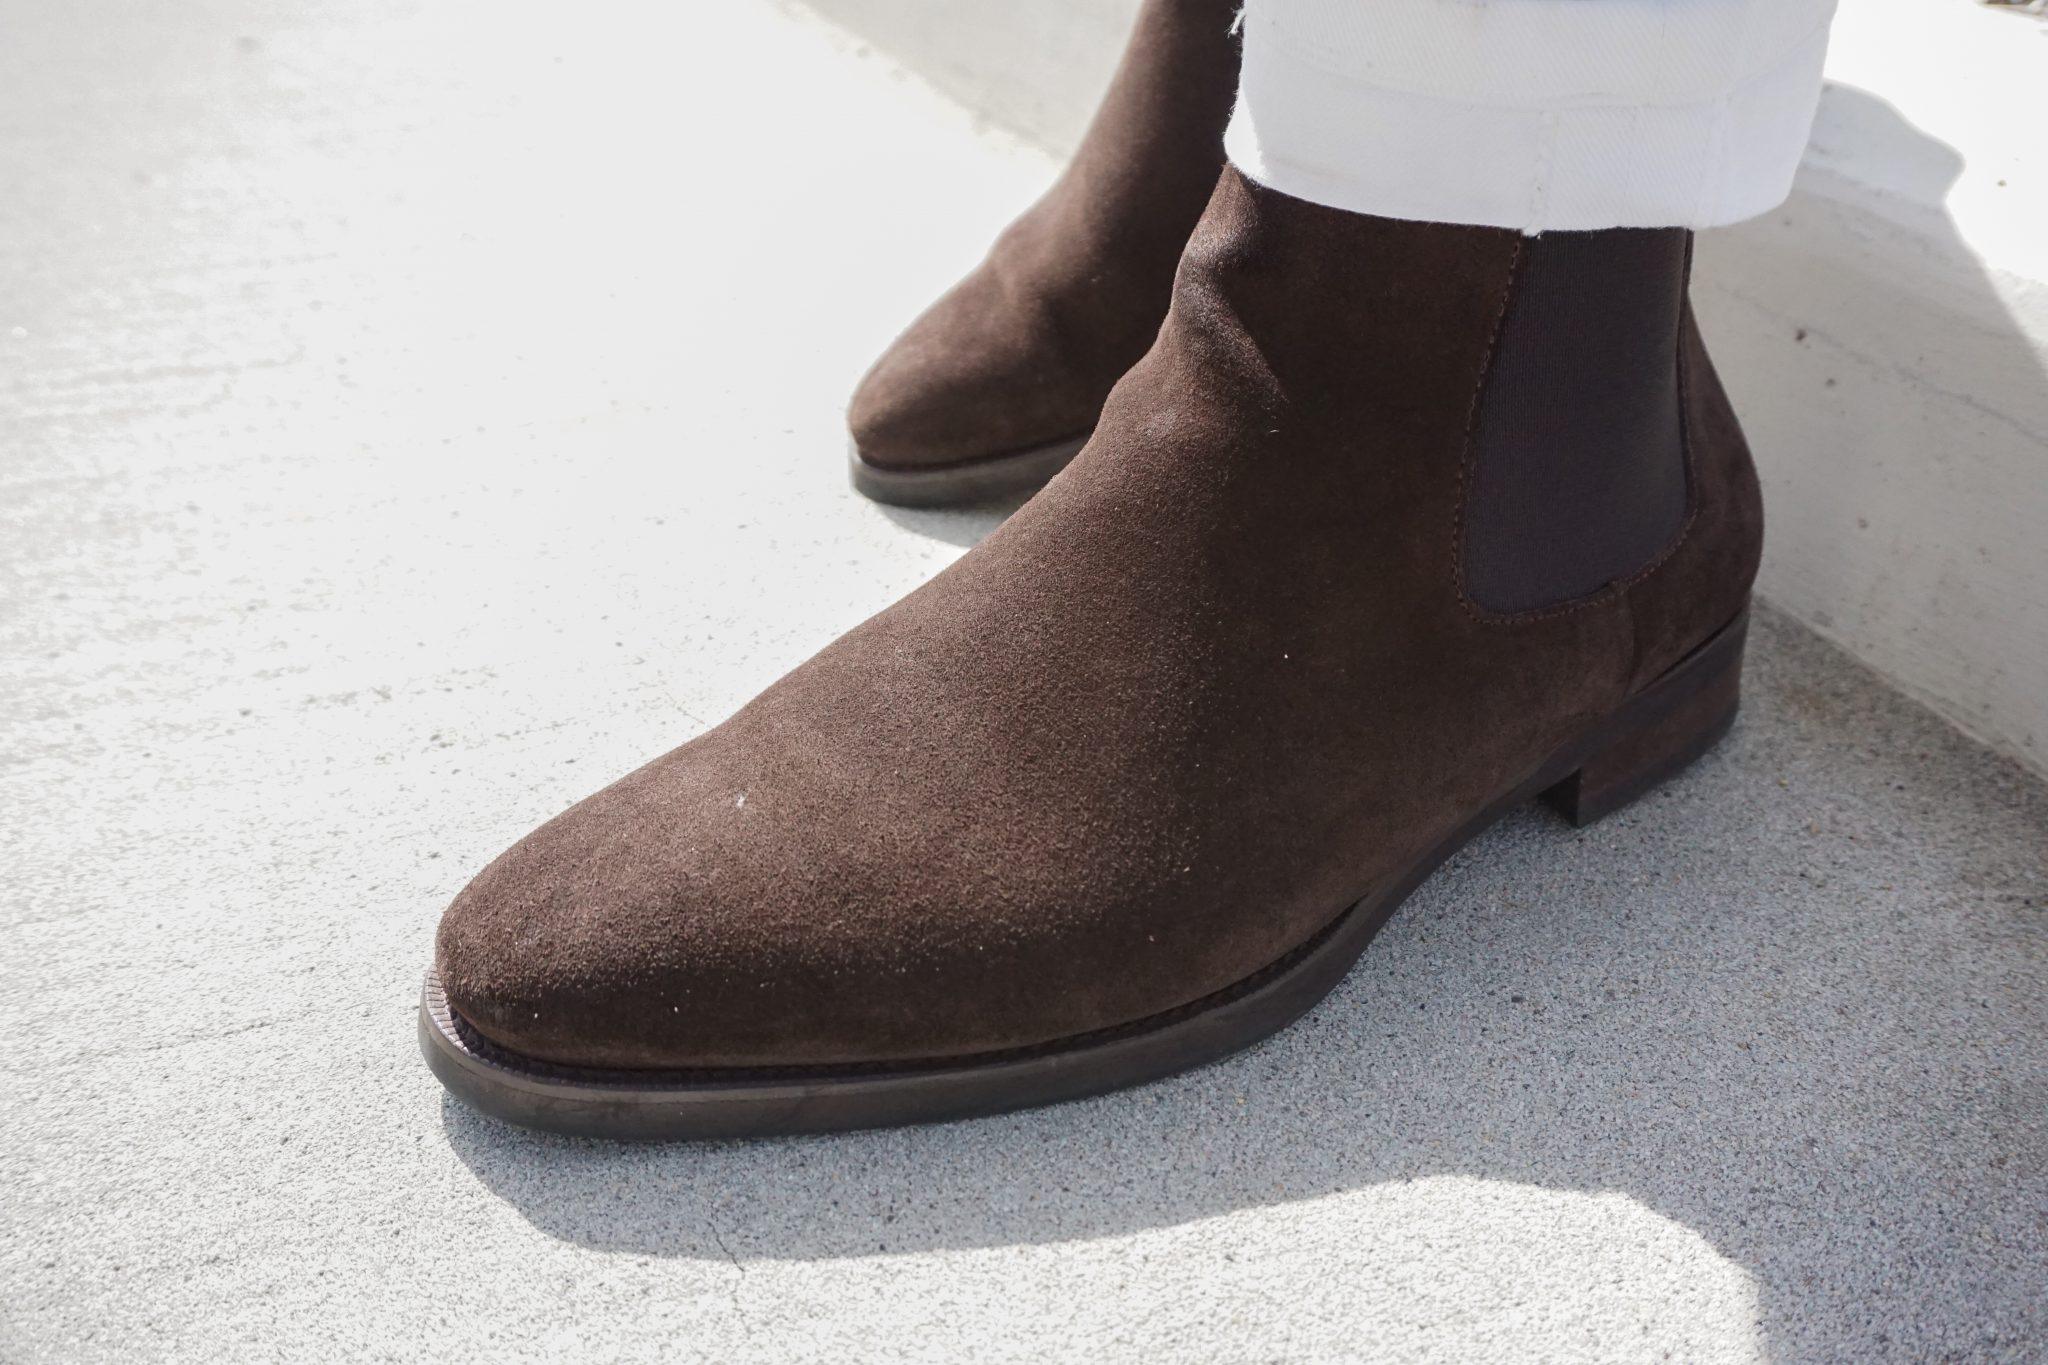 white-denim-jeans-brown-suede-jack-erwin-chelsea-boots